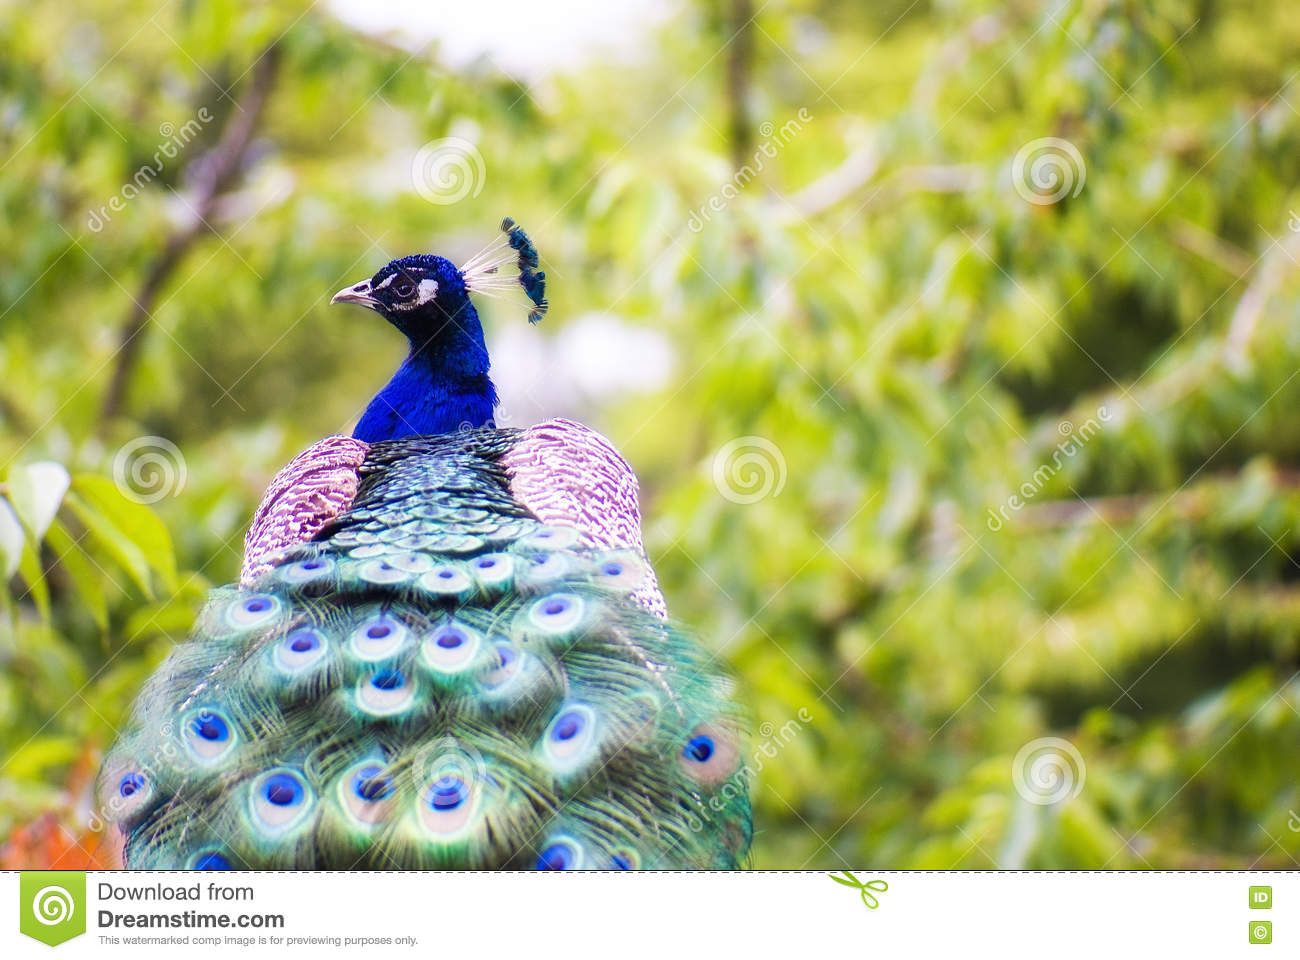 Good quality photo of a peacock bird in the wild: large bright colorful  tail, straight elongated neck, deep sapphire blue head with a royal crest  (looks ...